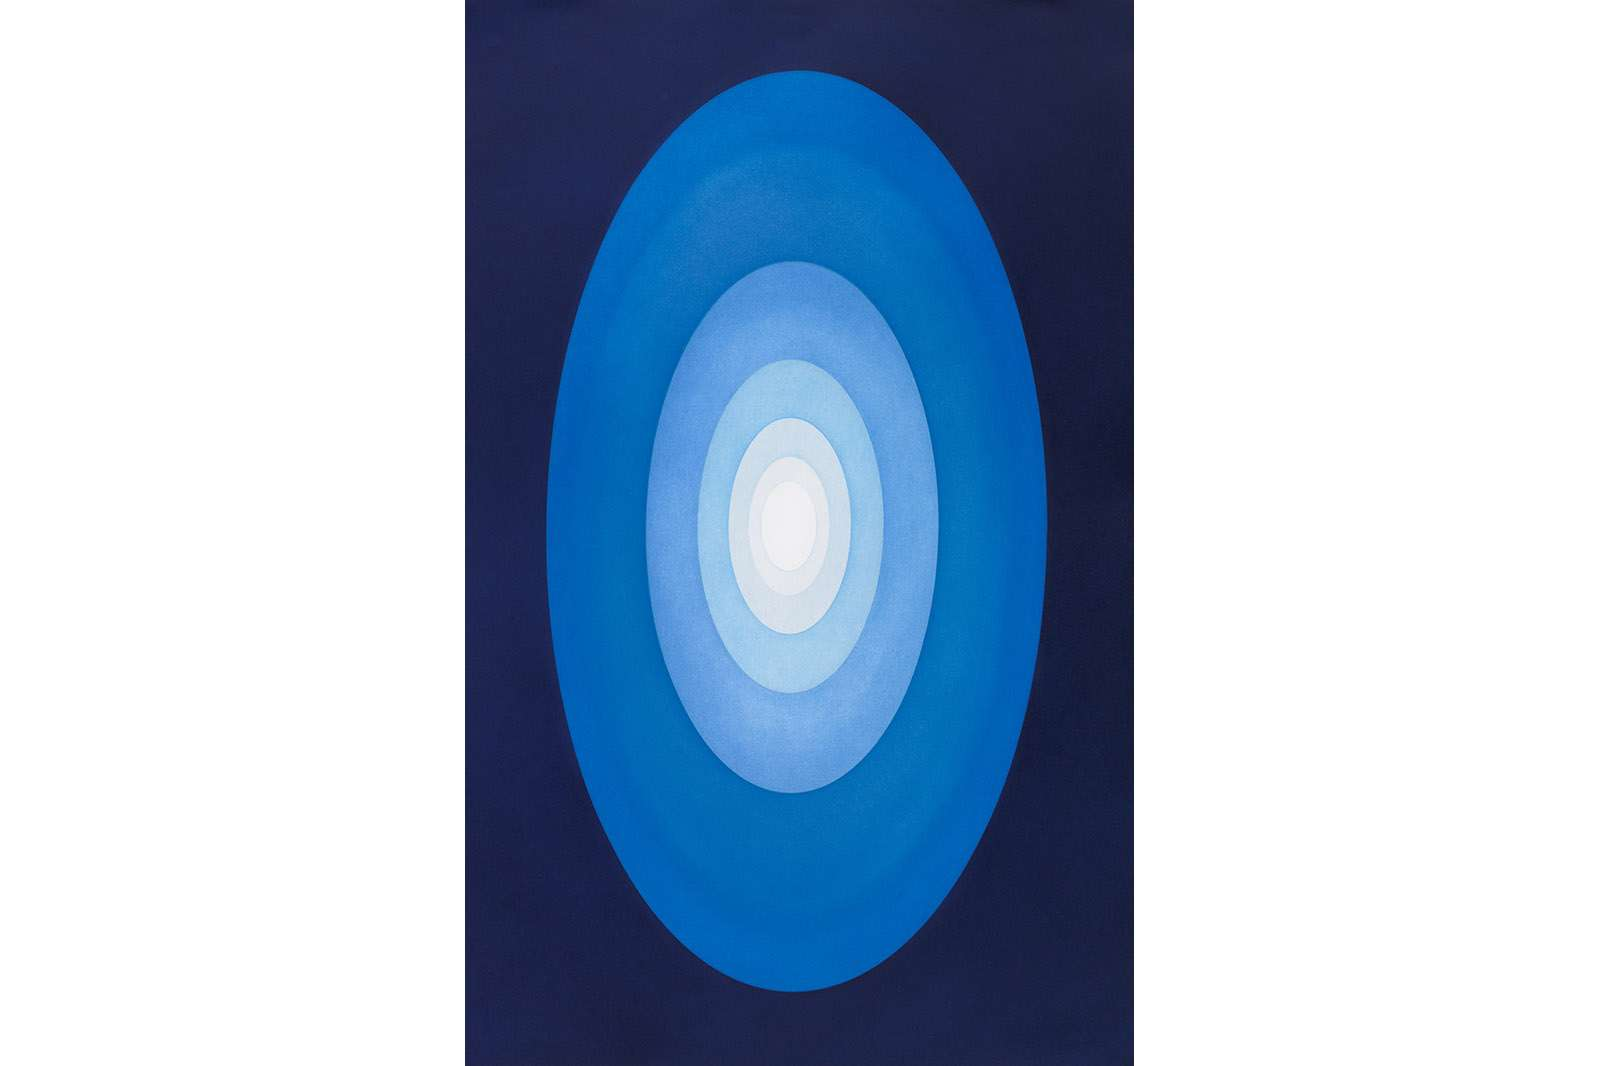 James Turrell, Meeting, 1989-90. Aquatint, 42 7/16 x 29 13/16 inches. Edition of 30.  © James Turrell. Photo courtesy of the artist and Pace Prints